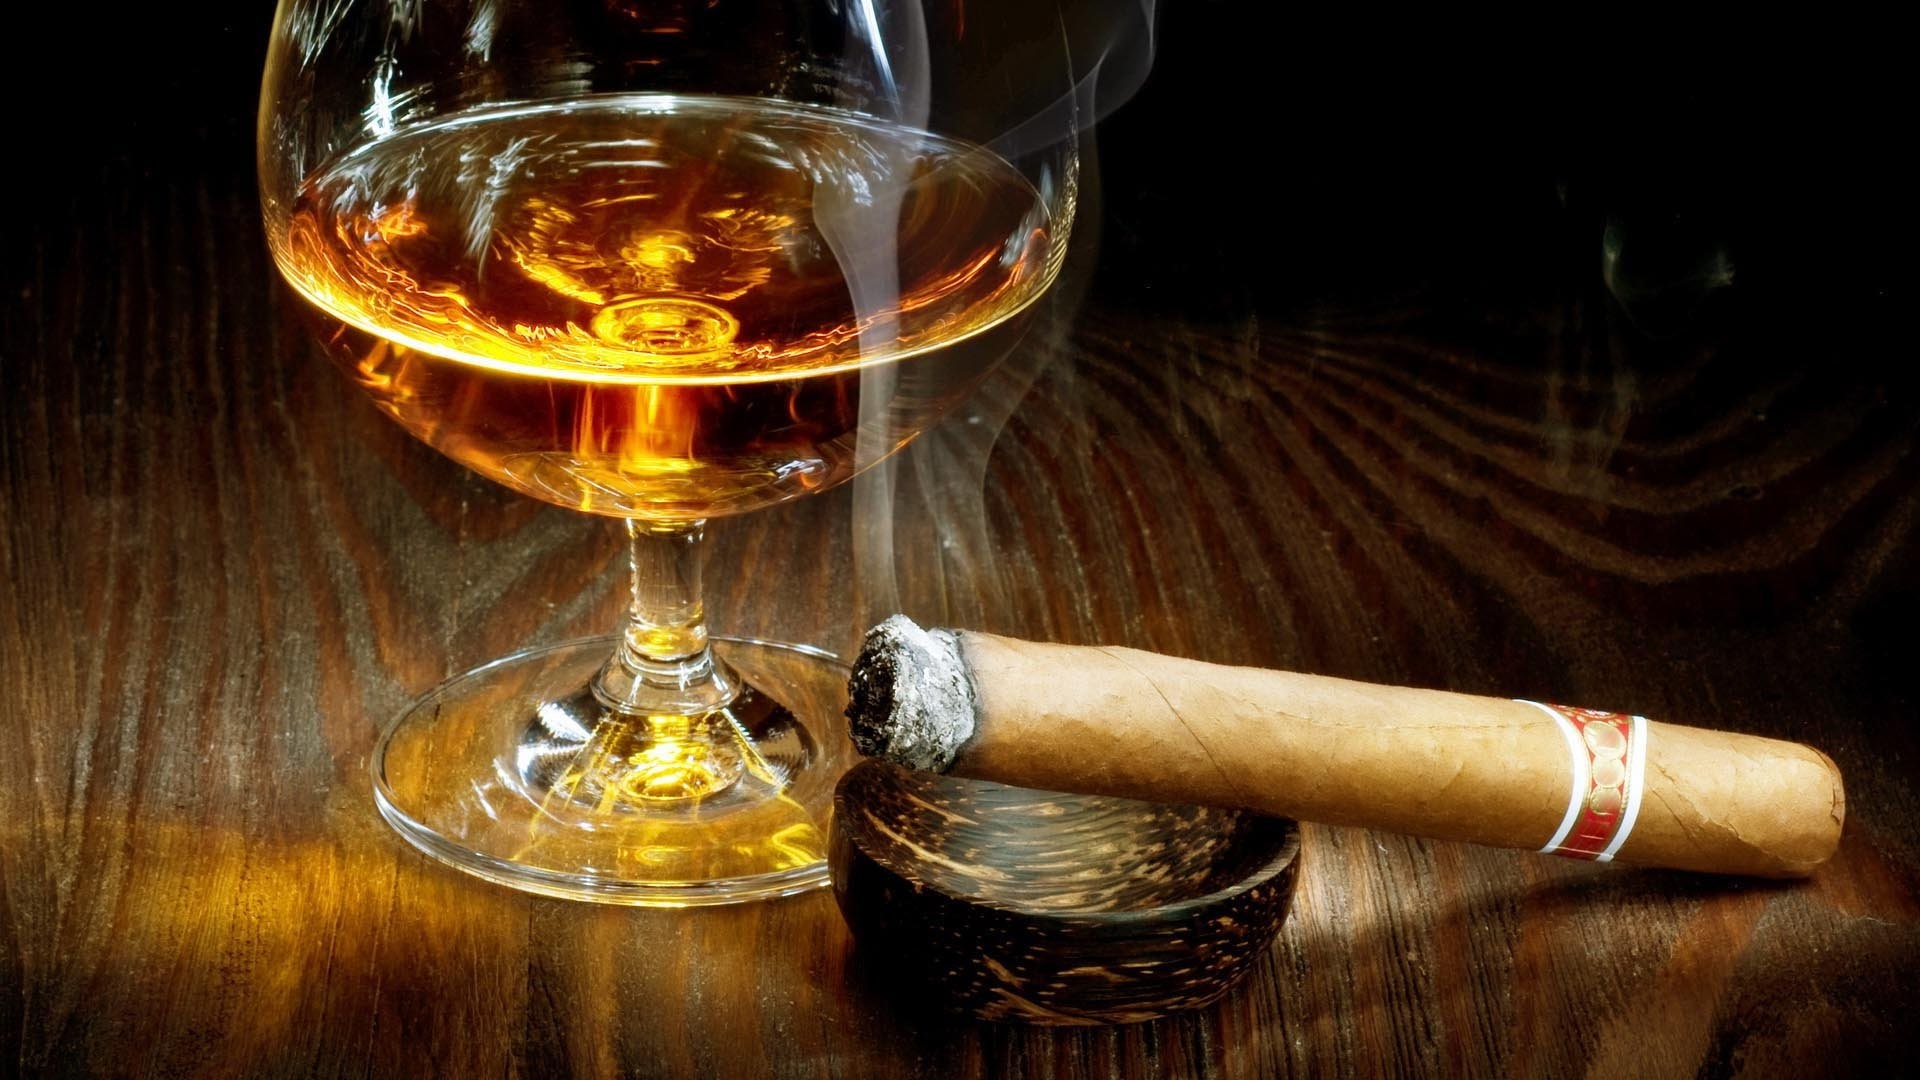 Res: 1920x1080, CIGARS cigarette tobacco bokeh smoke smoking cigar drink alcohol drinks  glass wallpaper |  | 590856 | WallpaperUP